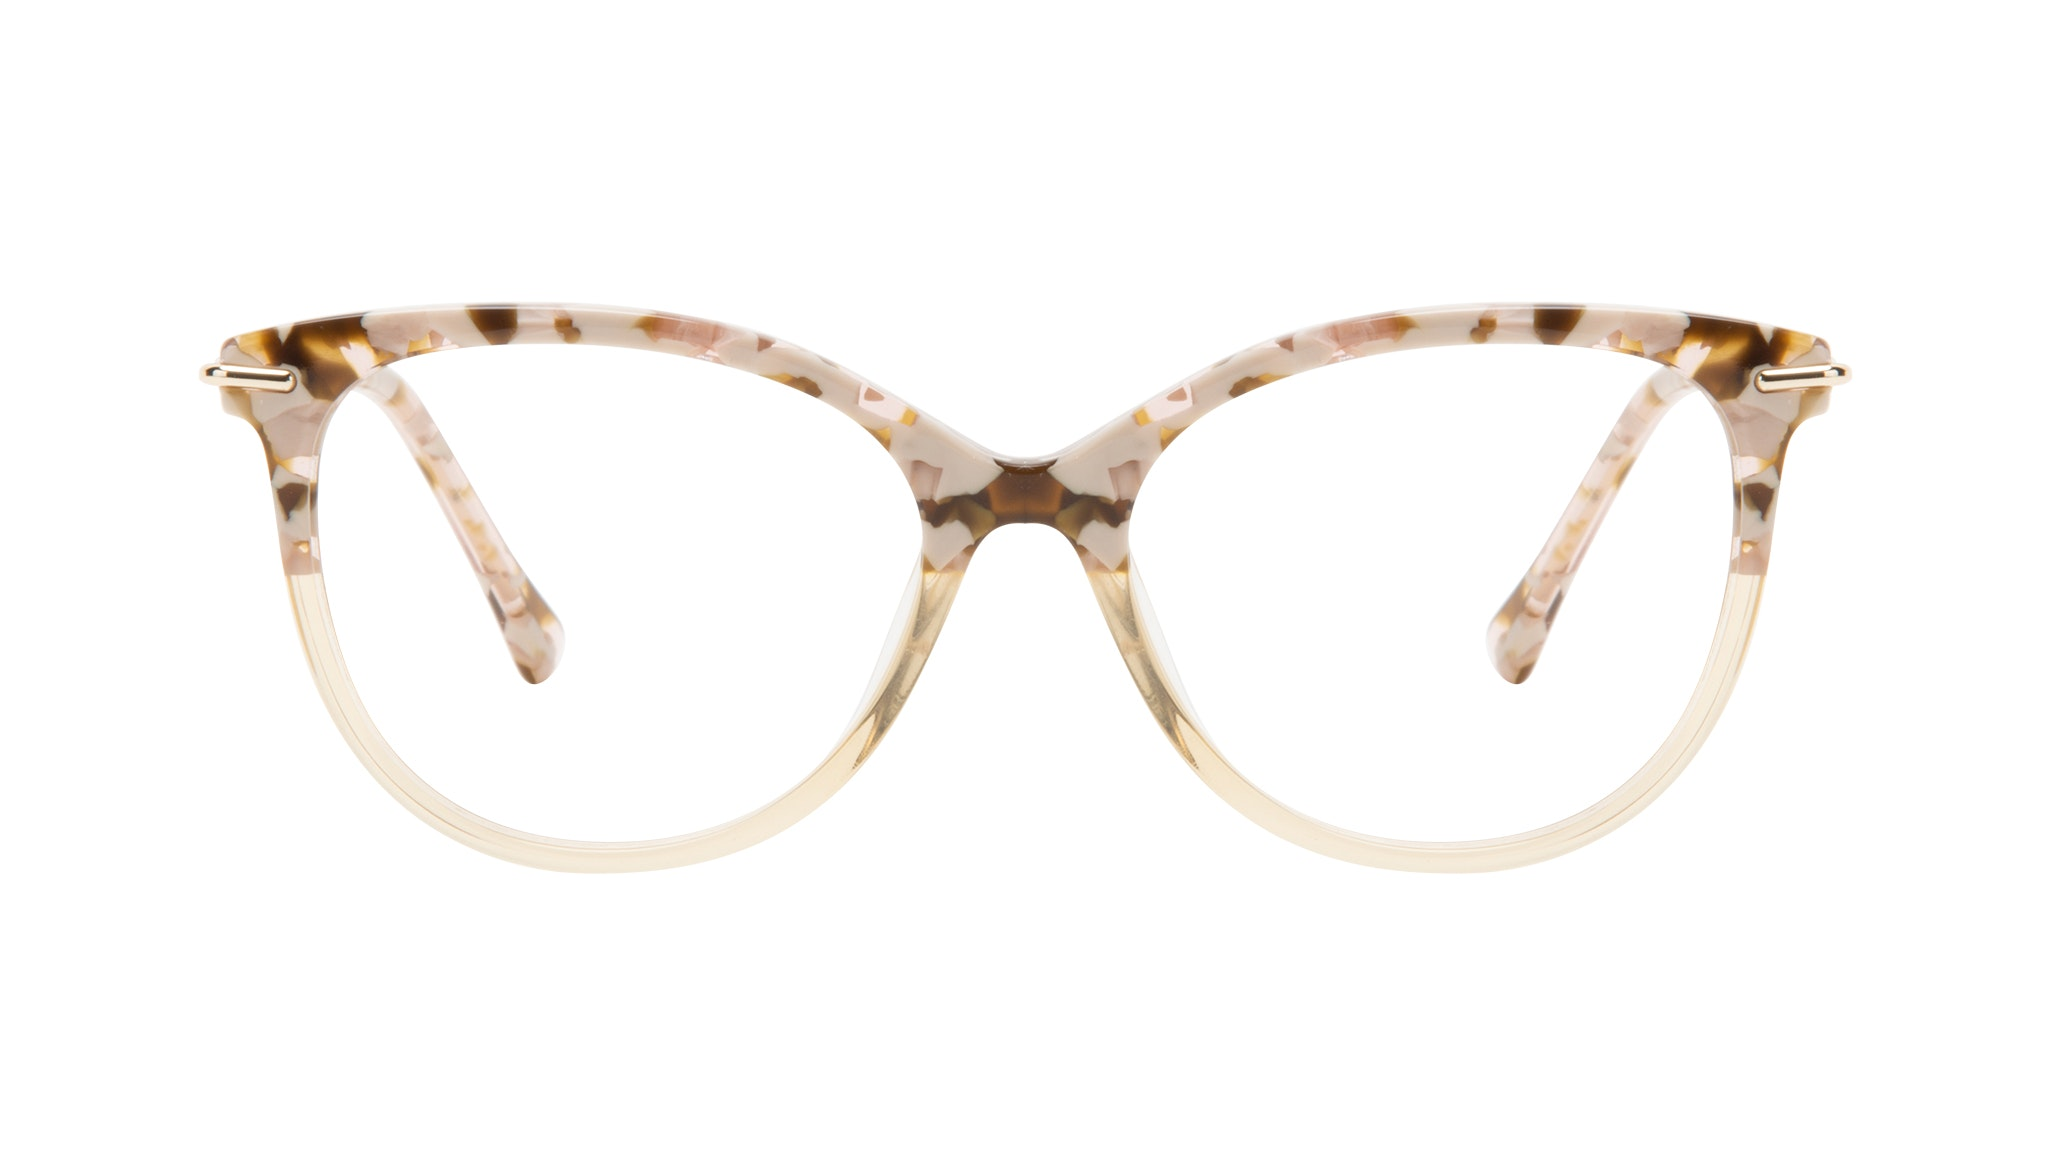 Affordable Fashion Glasses Round Eyeglasses Women Sublime Blond Flake